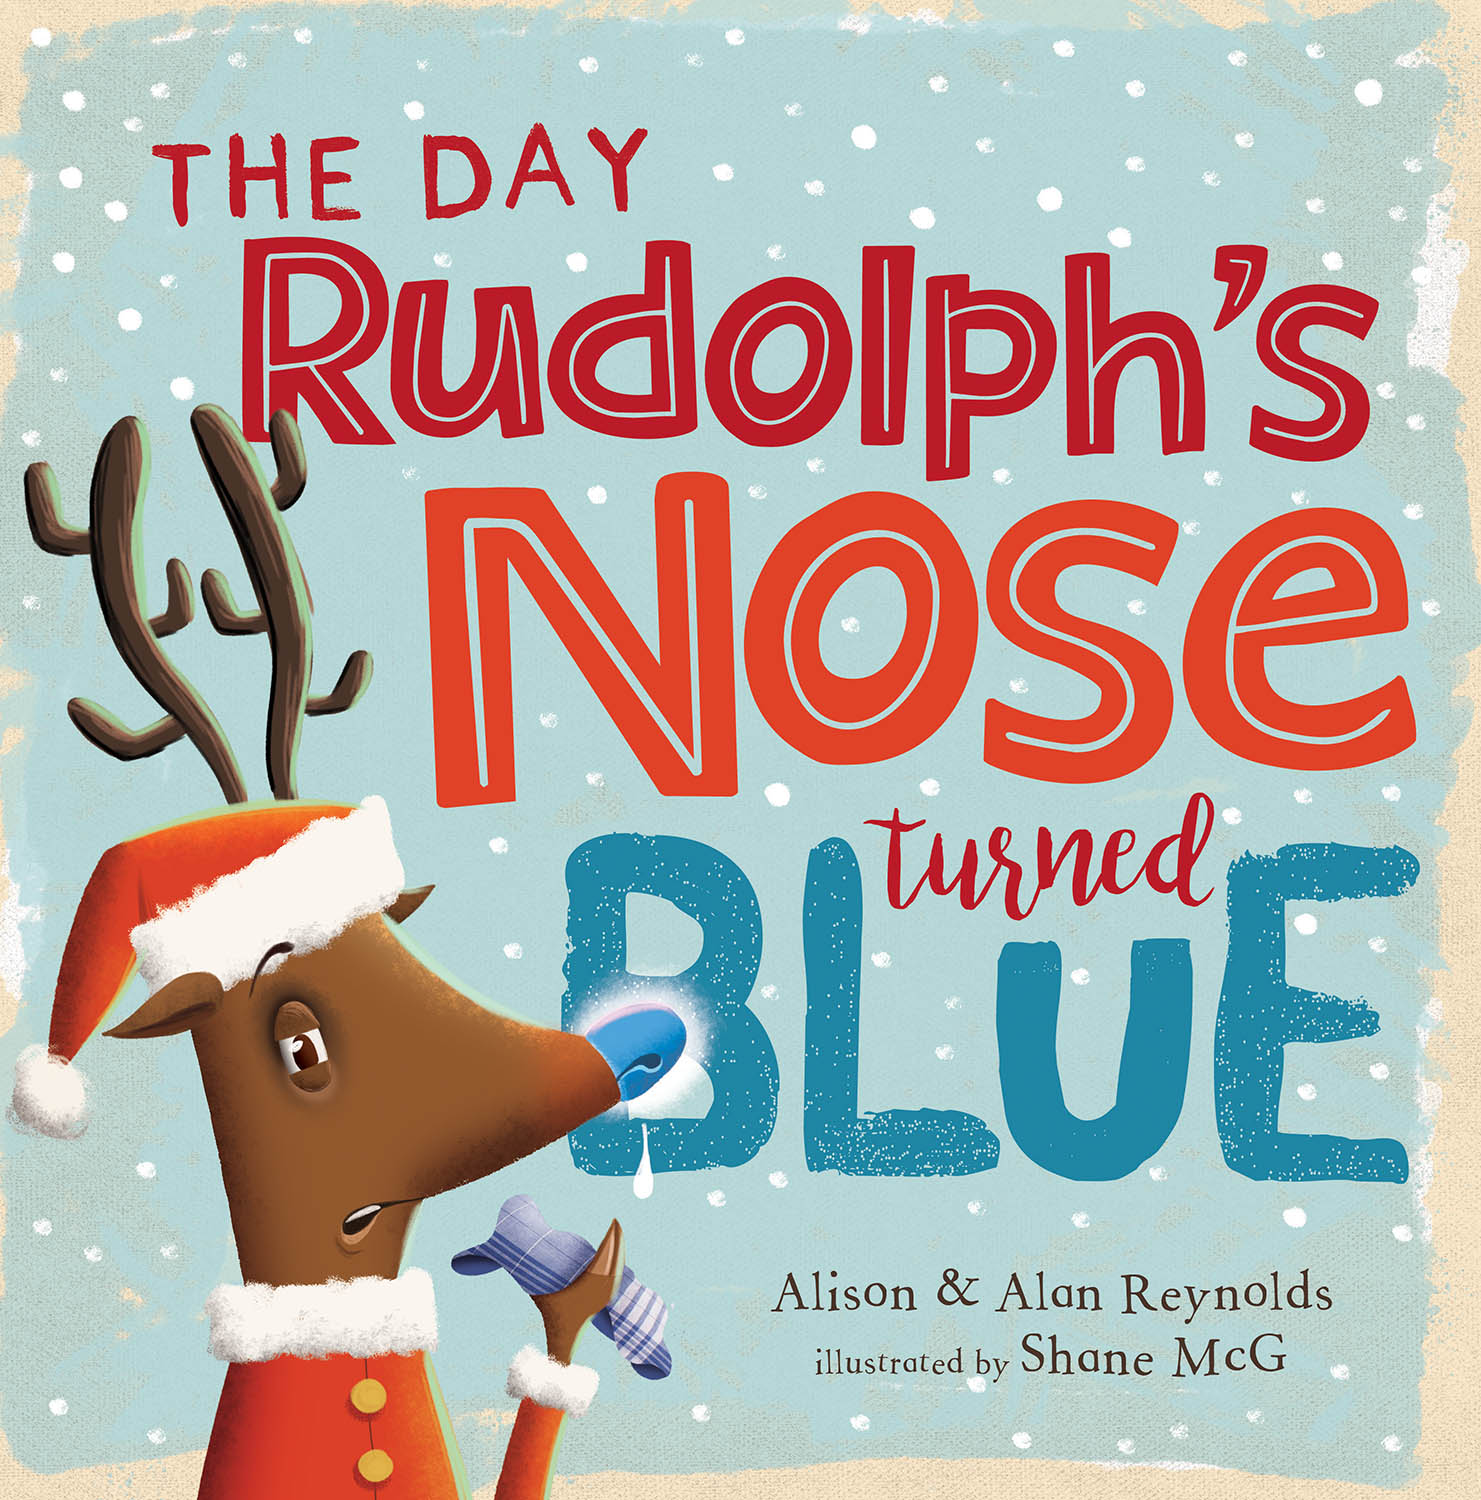 The Day Rudolph's Nose Turned Blue